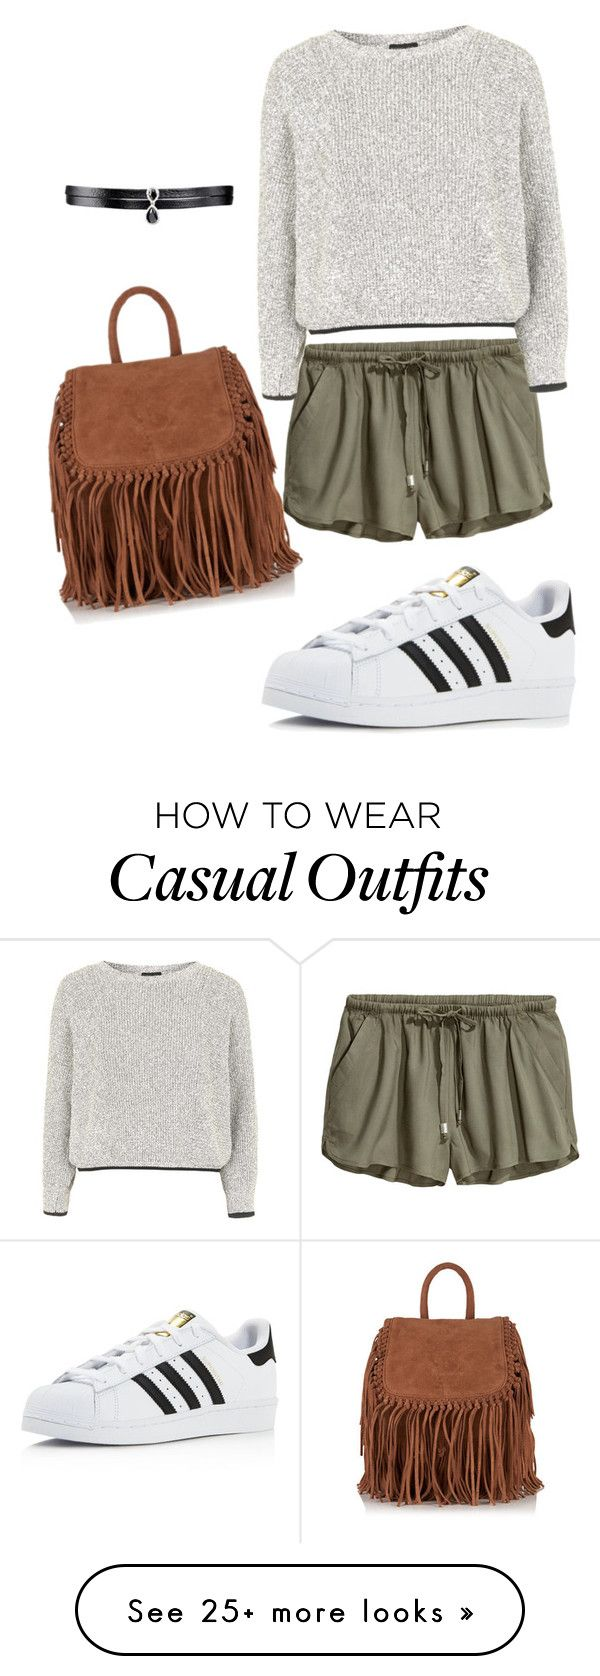 """""""Casual outfit for grey lovers"""" by greyblack on Polyvore featuring Topshop, Superdry, adidas and Fallon"""